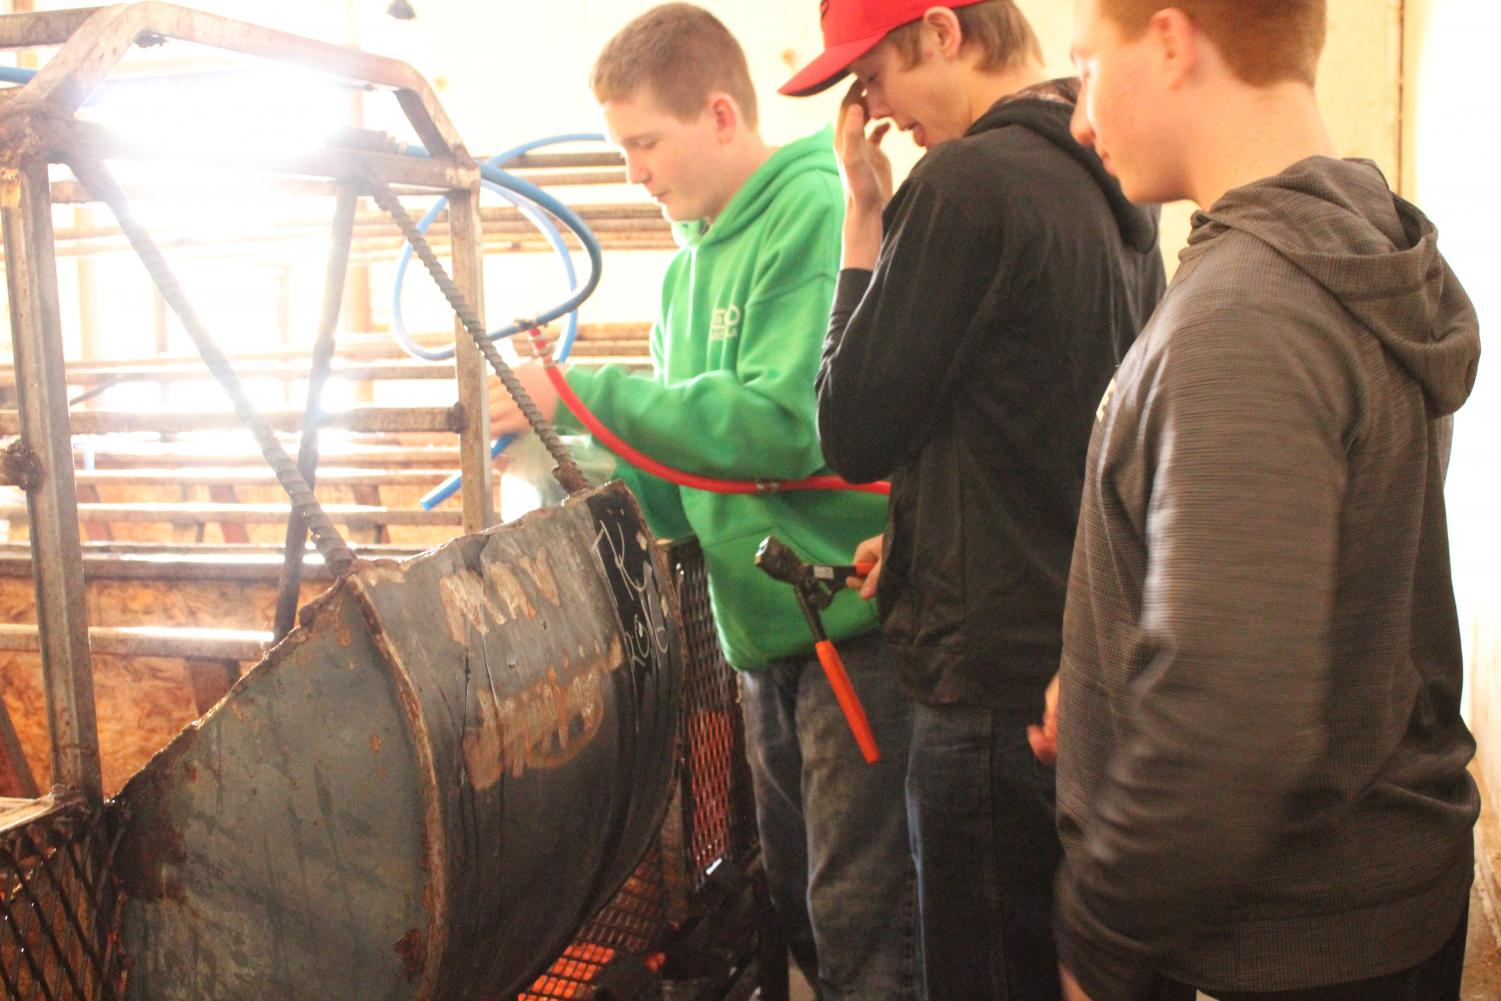 Freshmen Ryan Shields, Blake Weingart, and Hunter Hayden fix hoses for the pigs' water feeder in AG class.